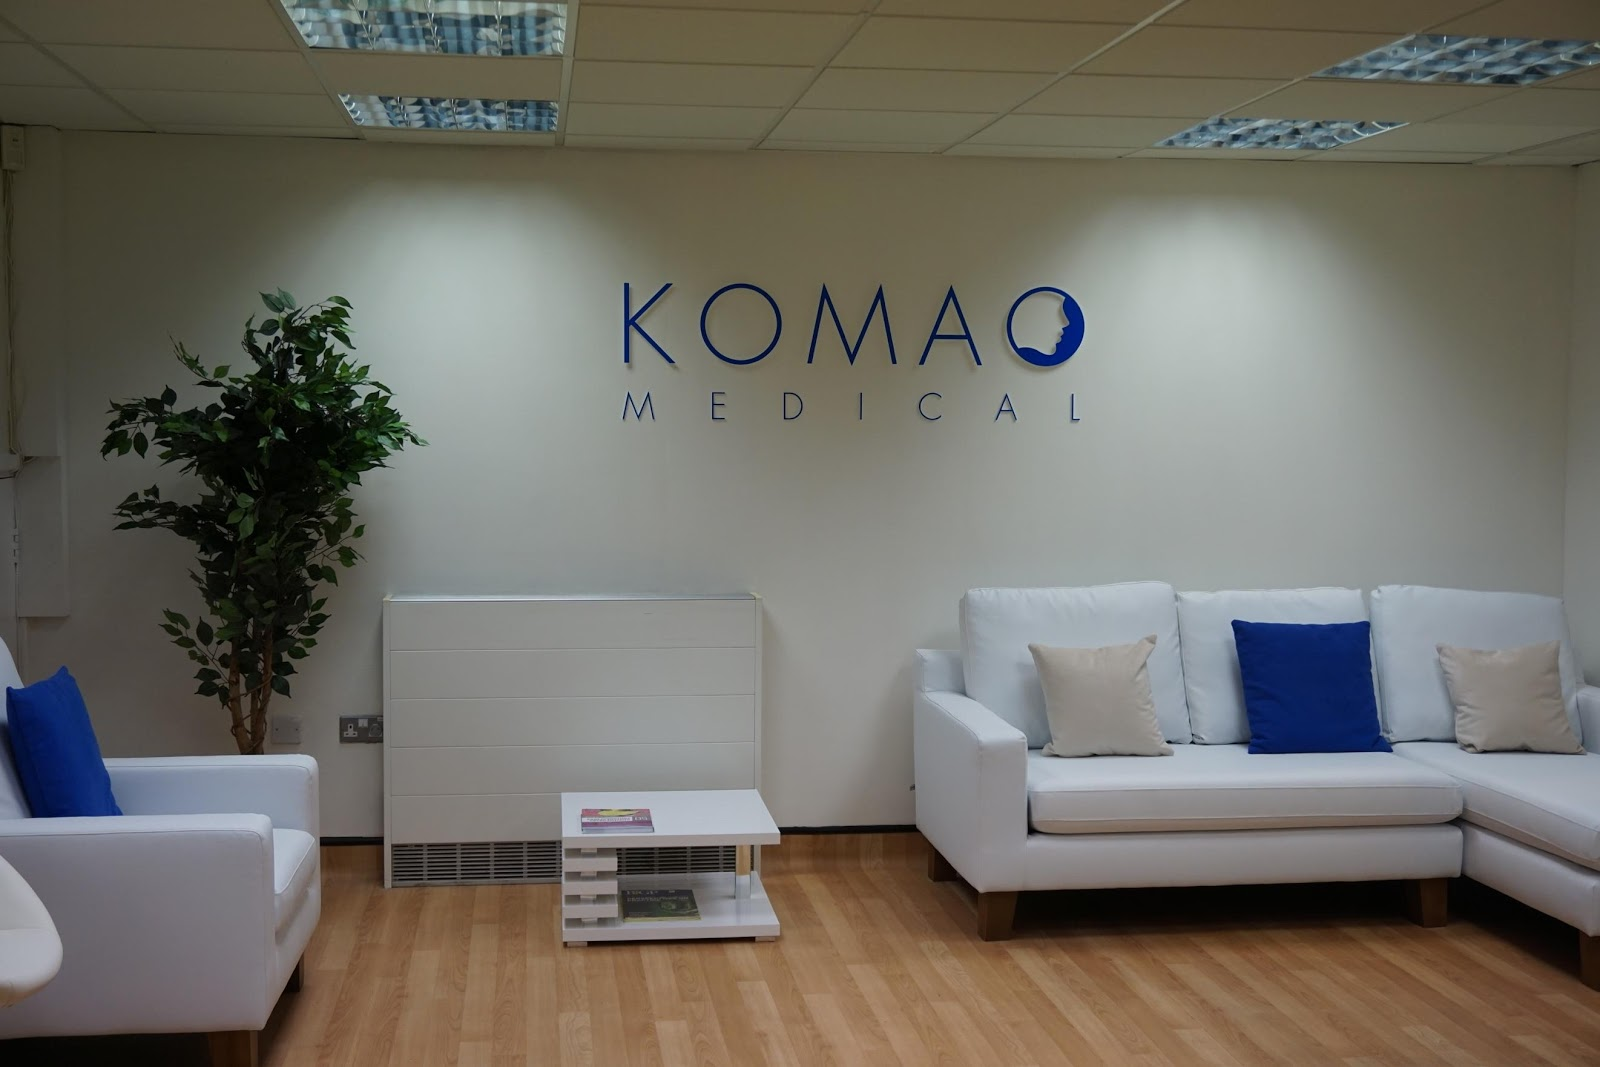 Komao medical hair clinic front lobby